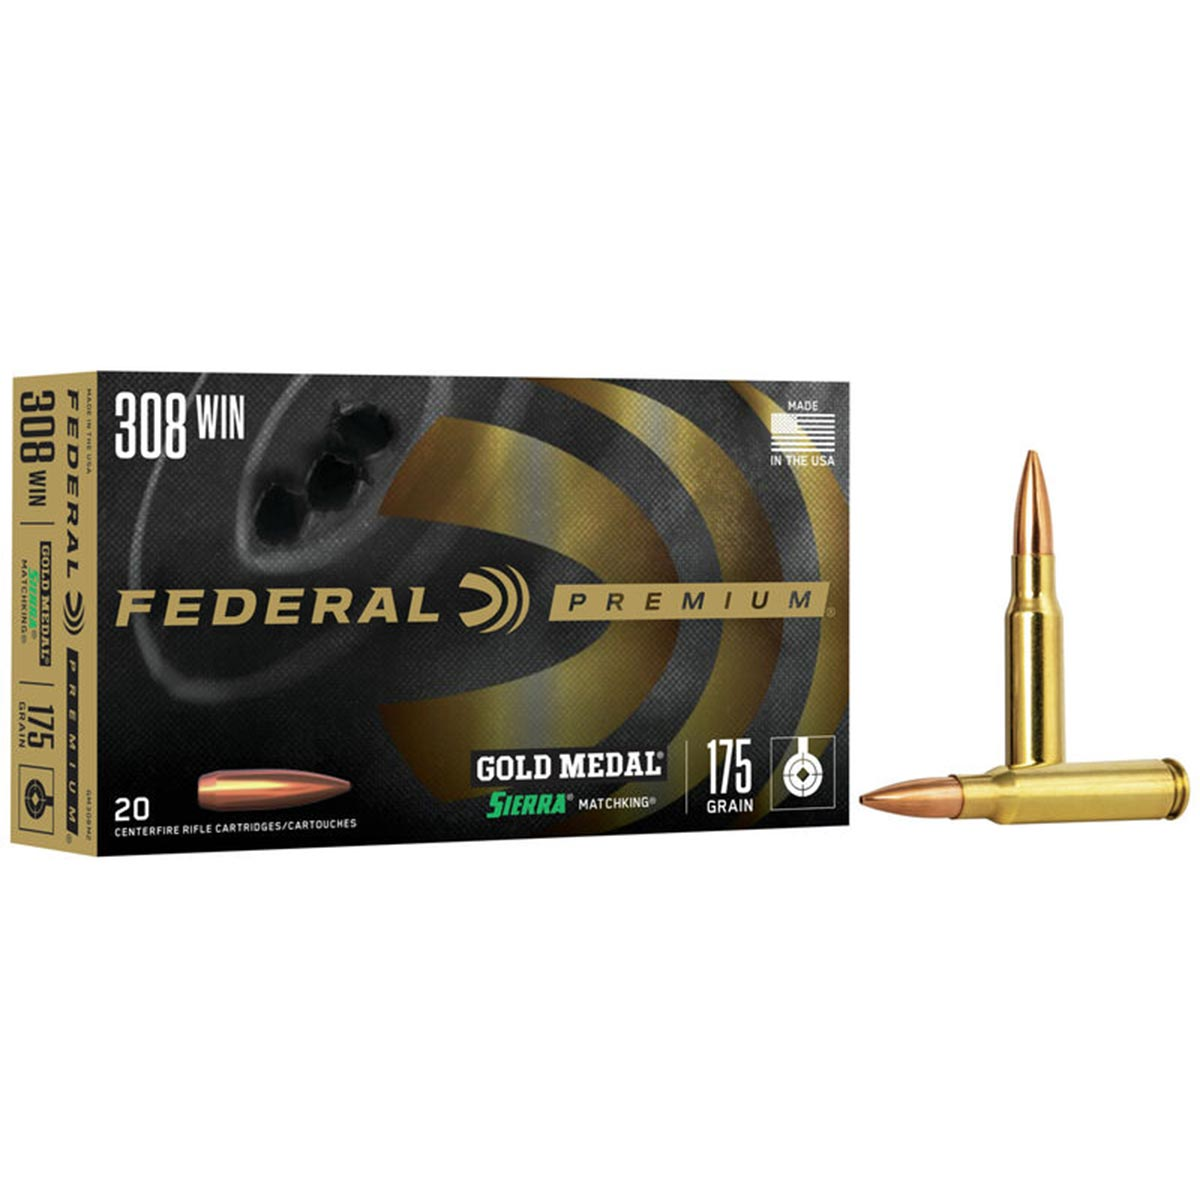 Federal Gold Medal Sierra MatchKing 308 Win 175 Grain 2600FPS Target Ammunition_1.jpg